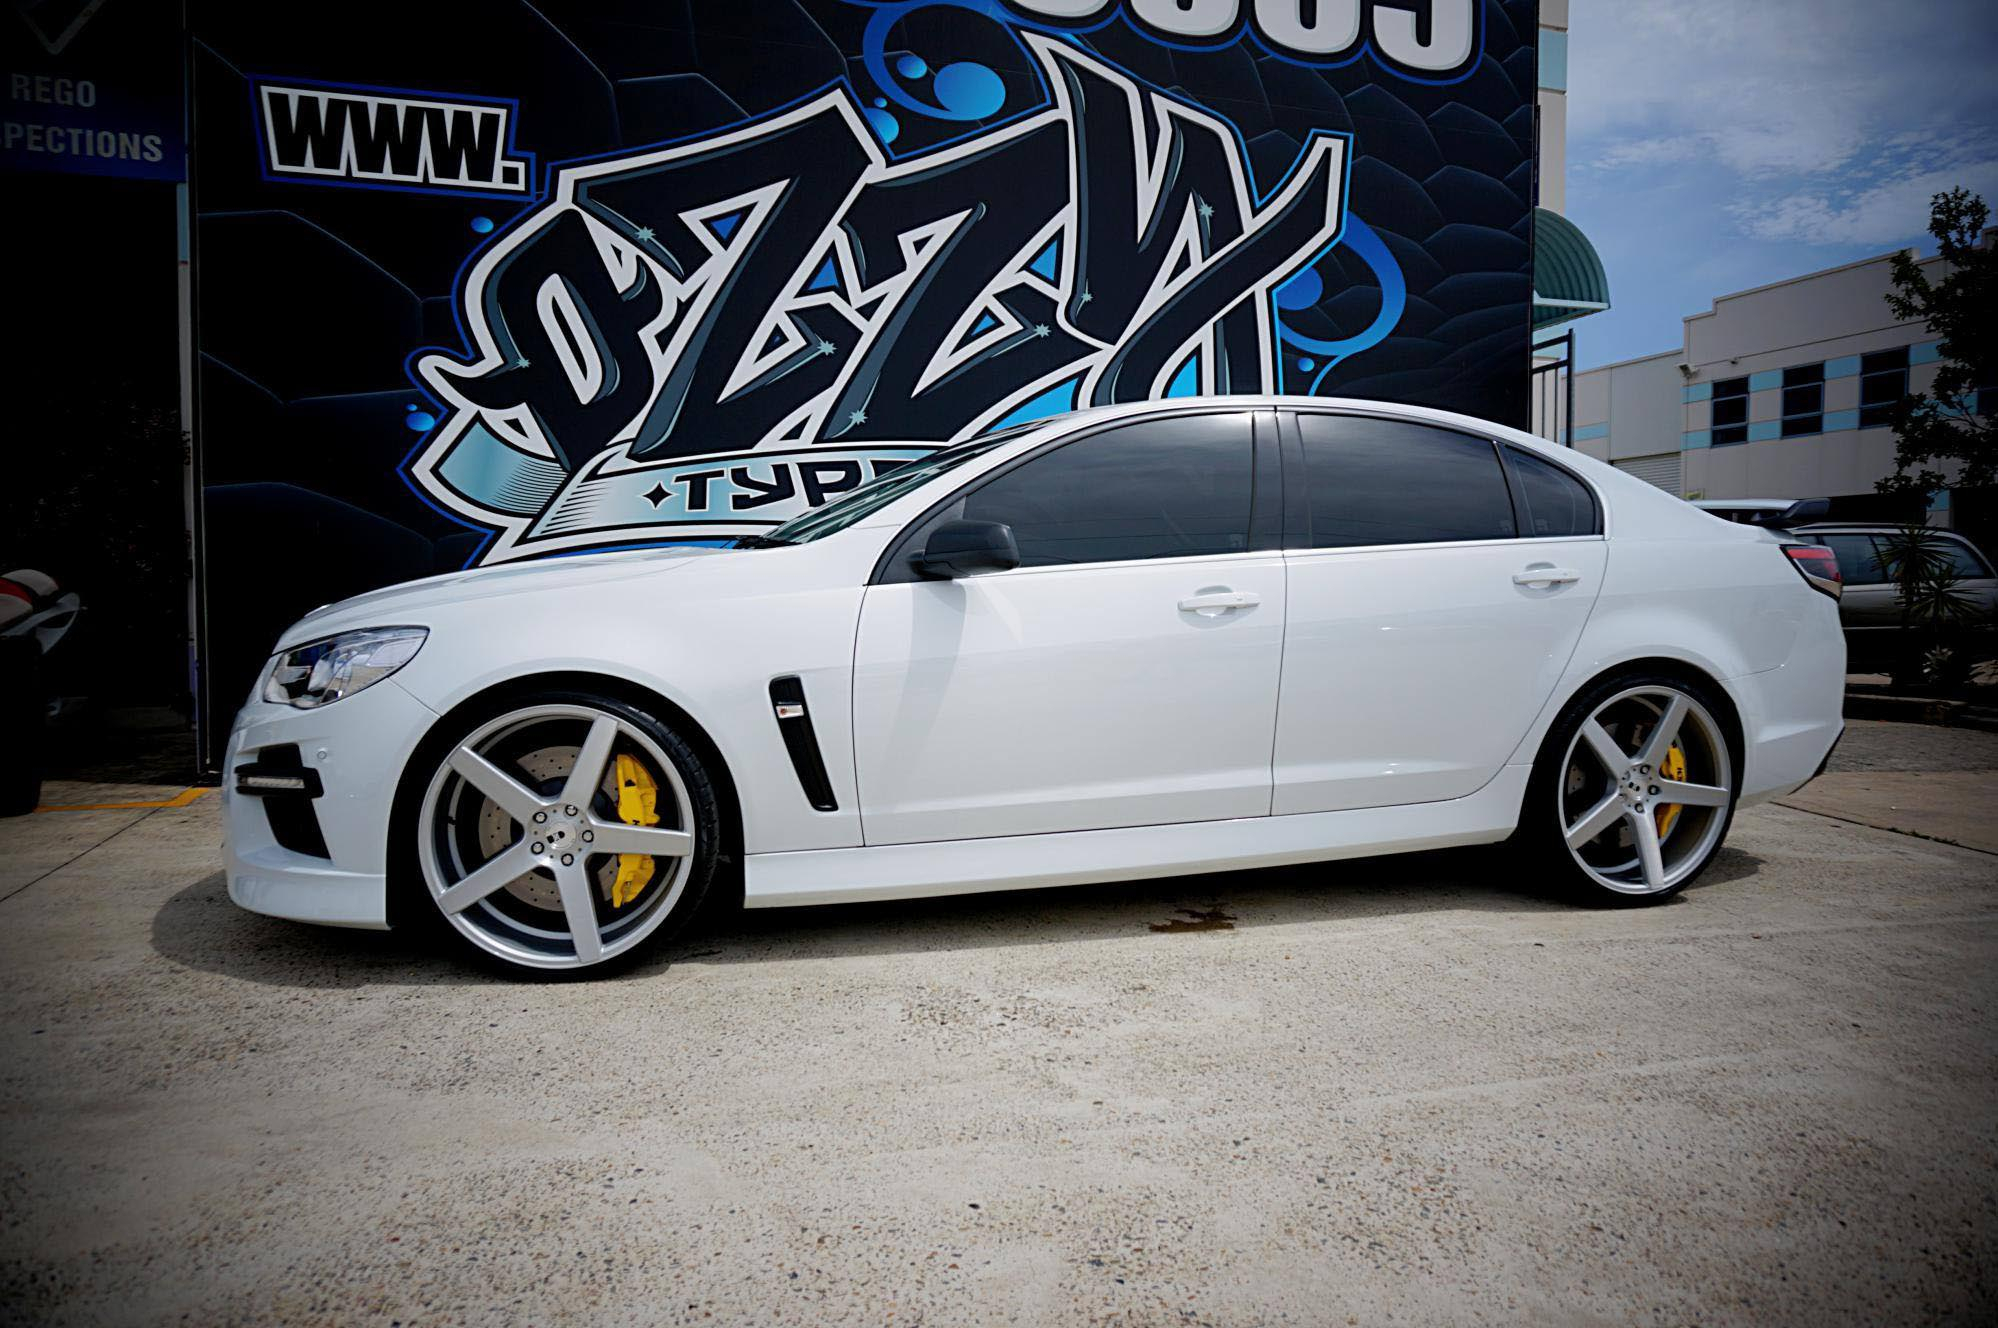 2023 Holden Commodore Gts Price, Design and Review